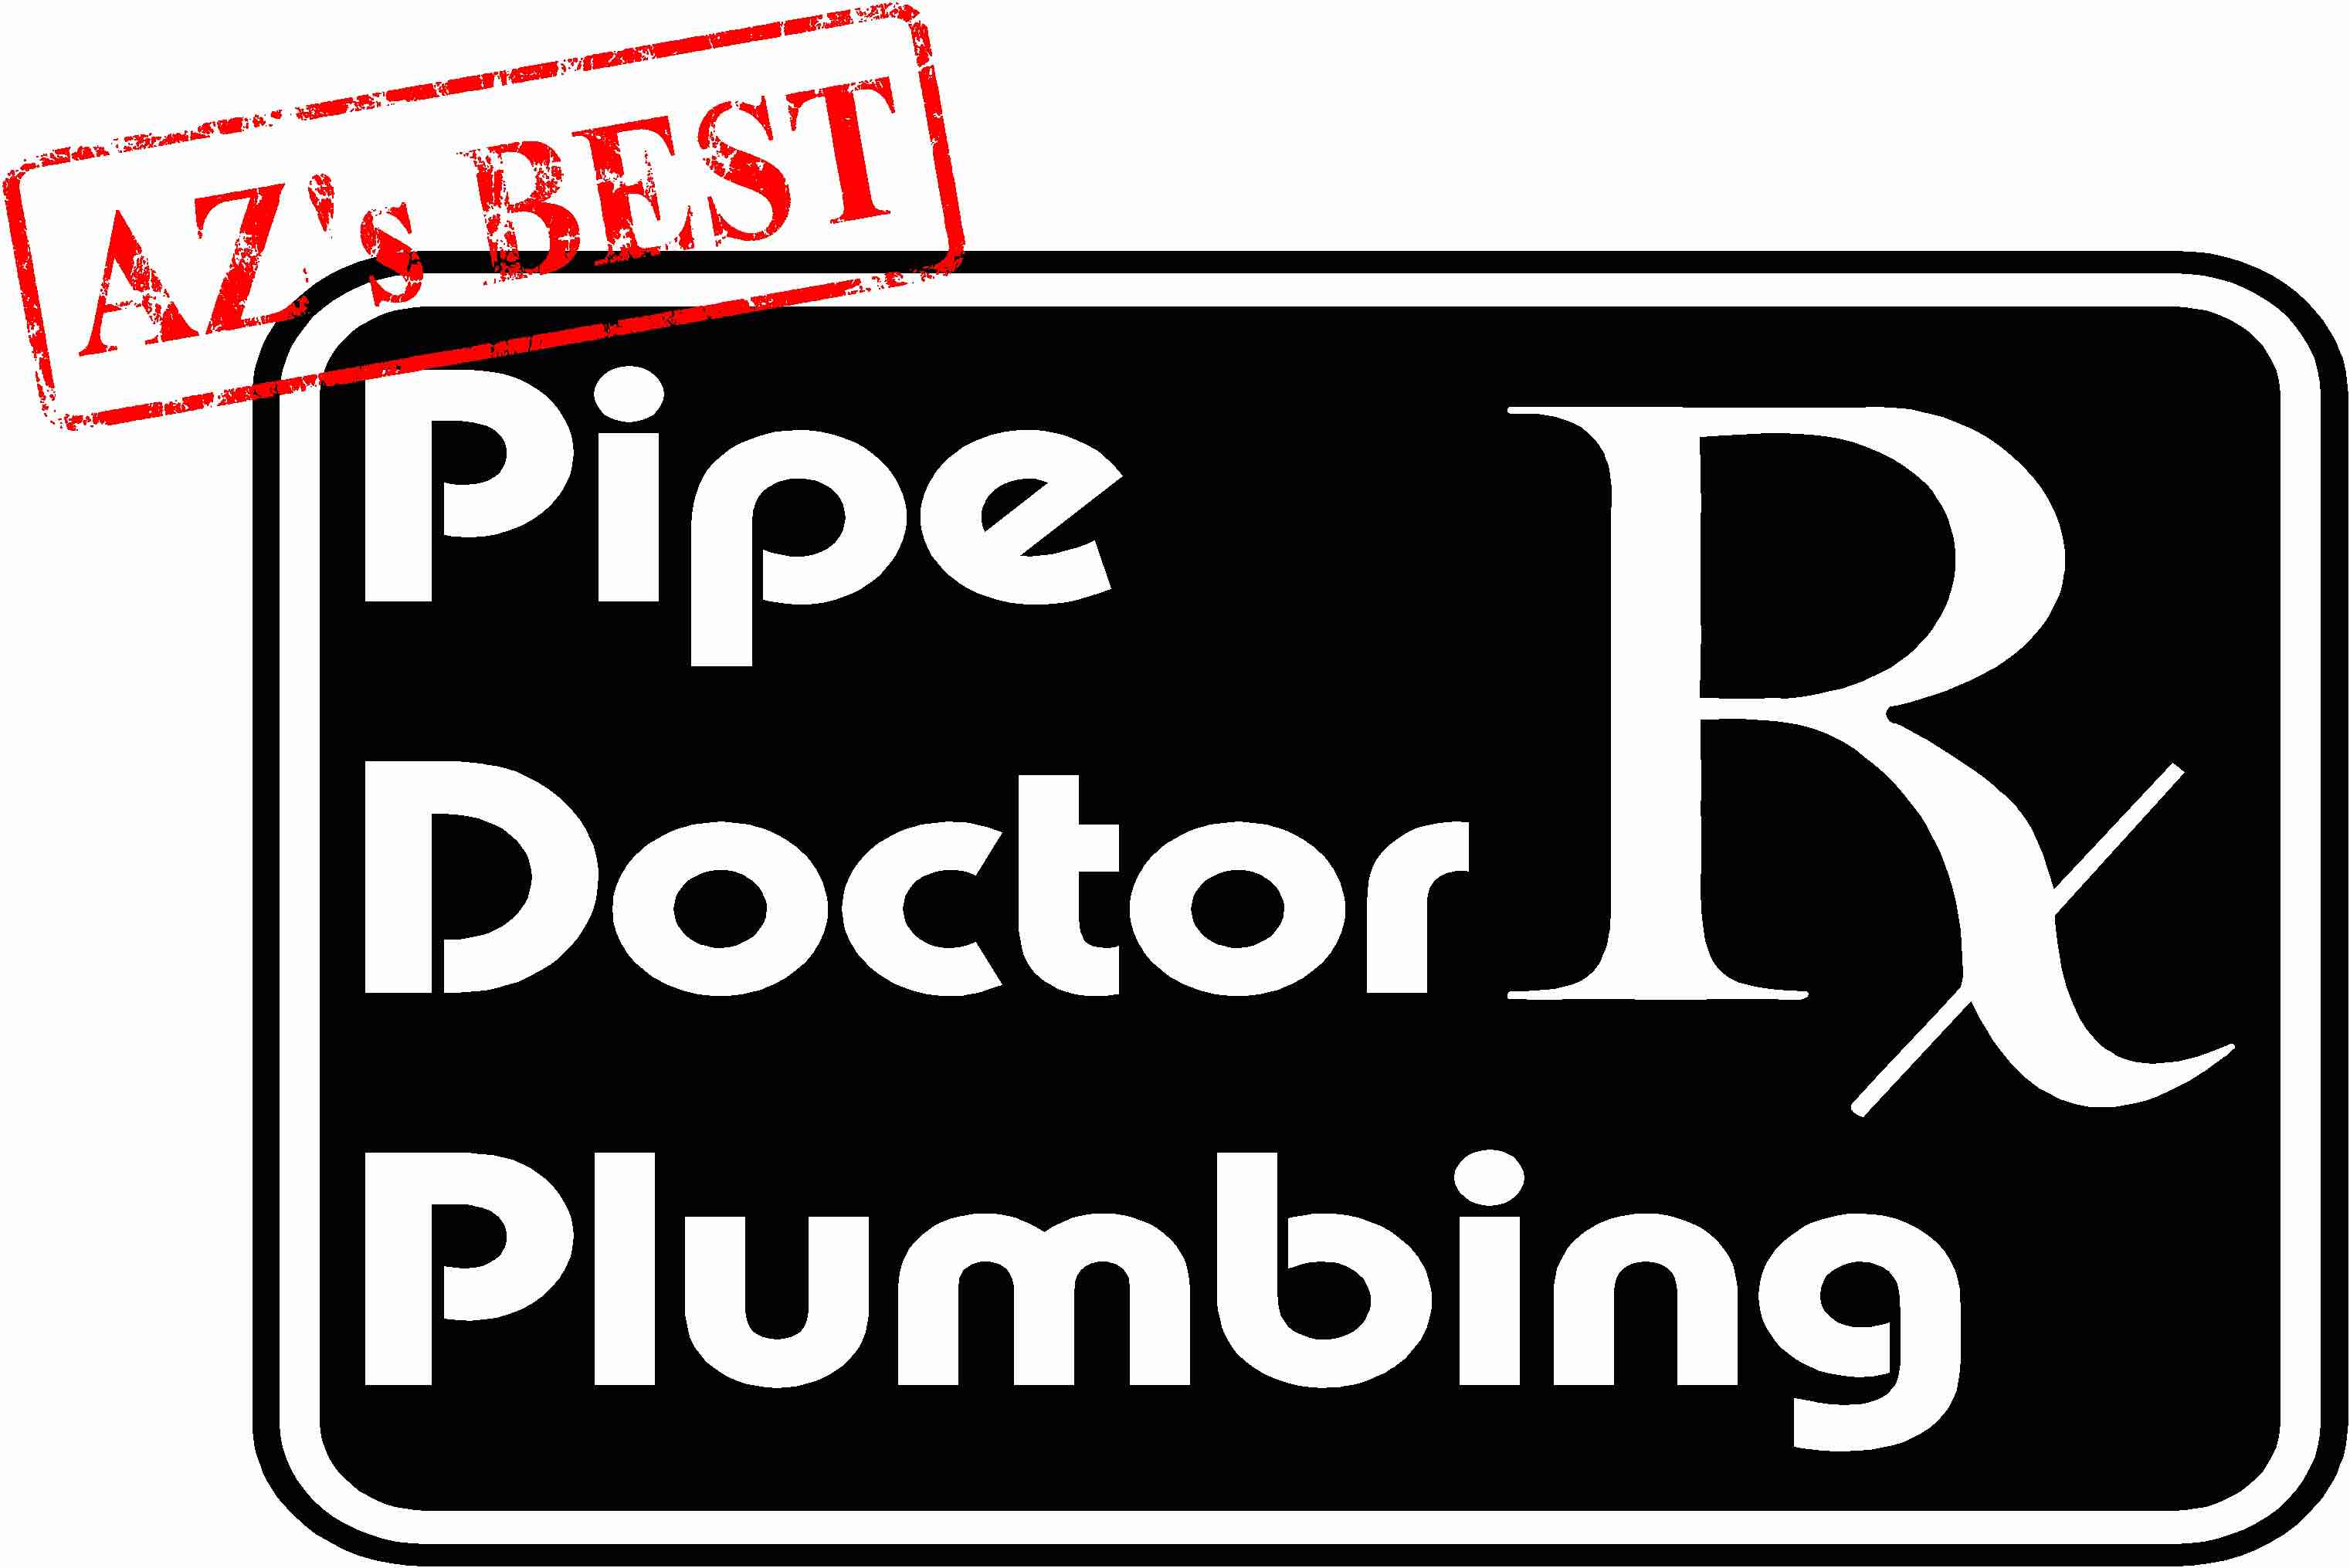 AZs Best Pipe Doctor Plumbing LLC logo